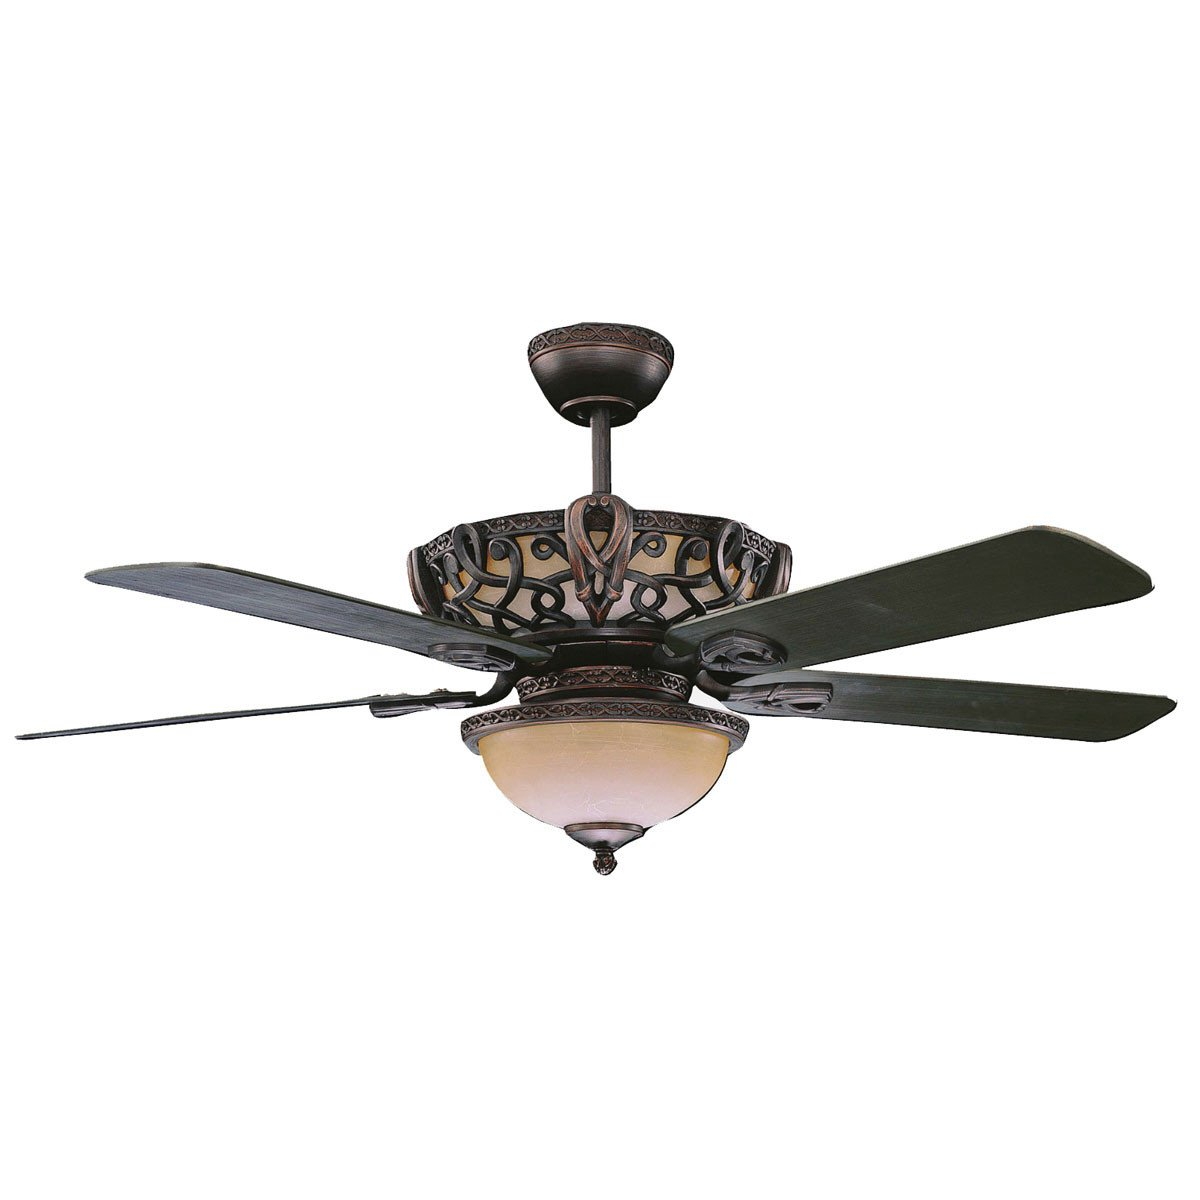 "Concord Fans 60"" Aracruz Oil Rubbed Bronze Ceiling Fan, Up & Downlights + Remote"